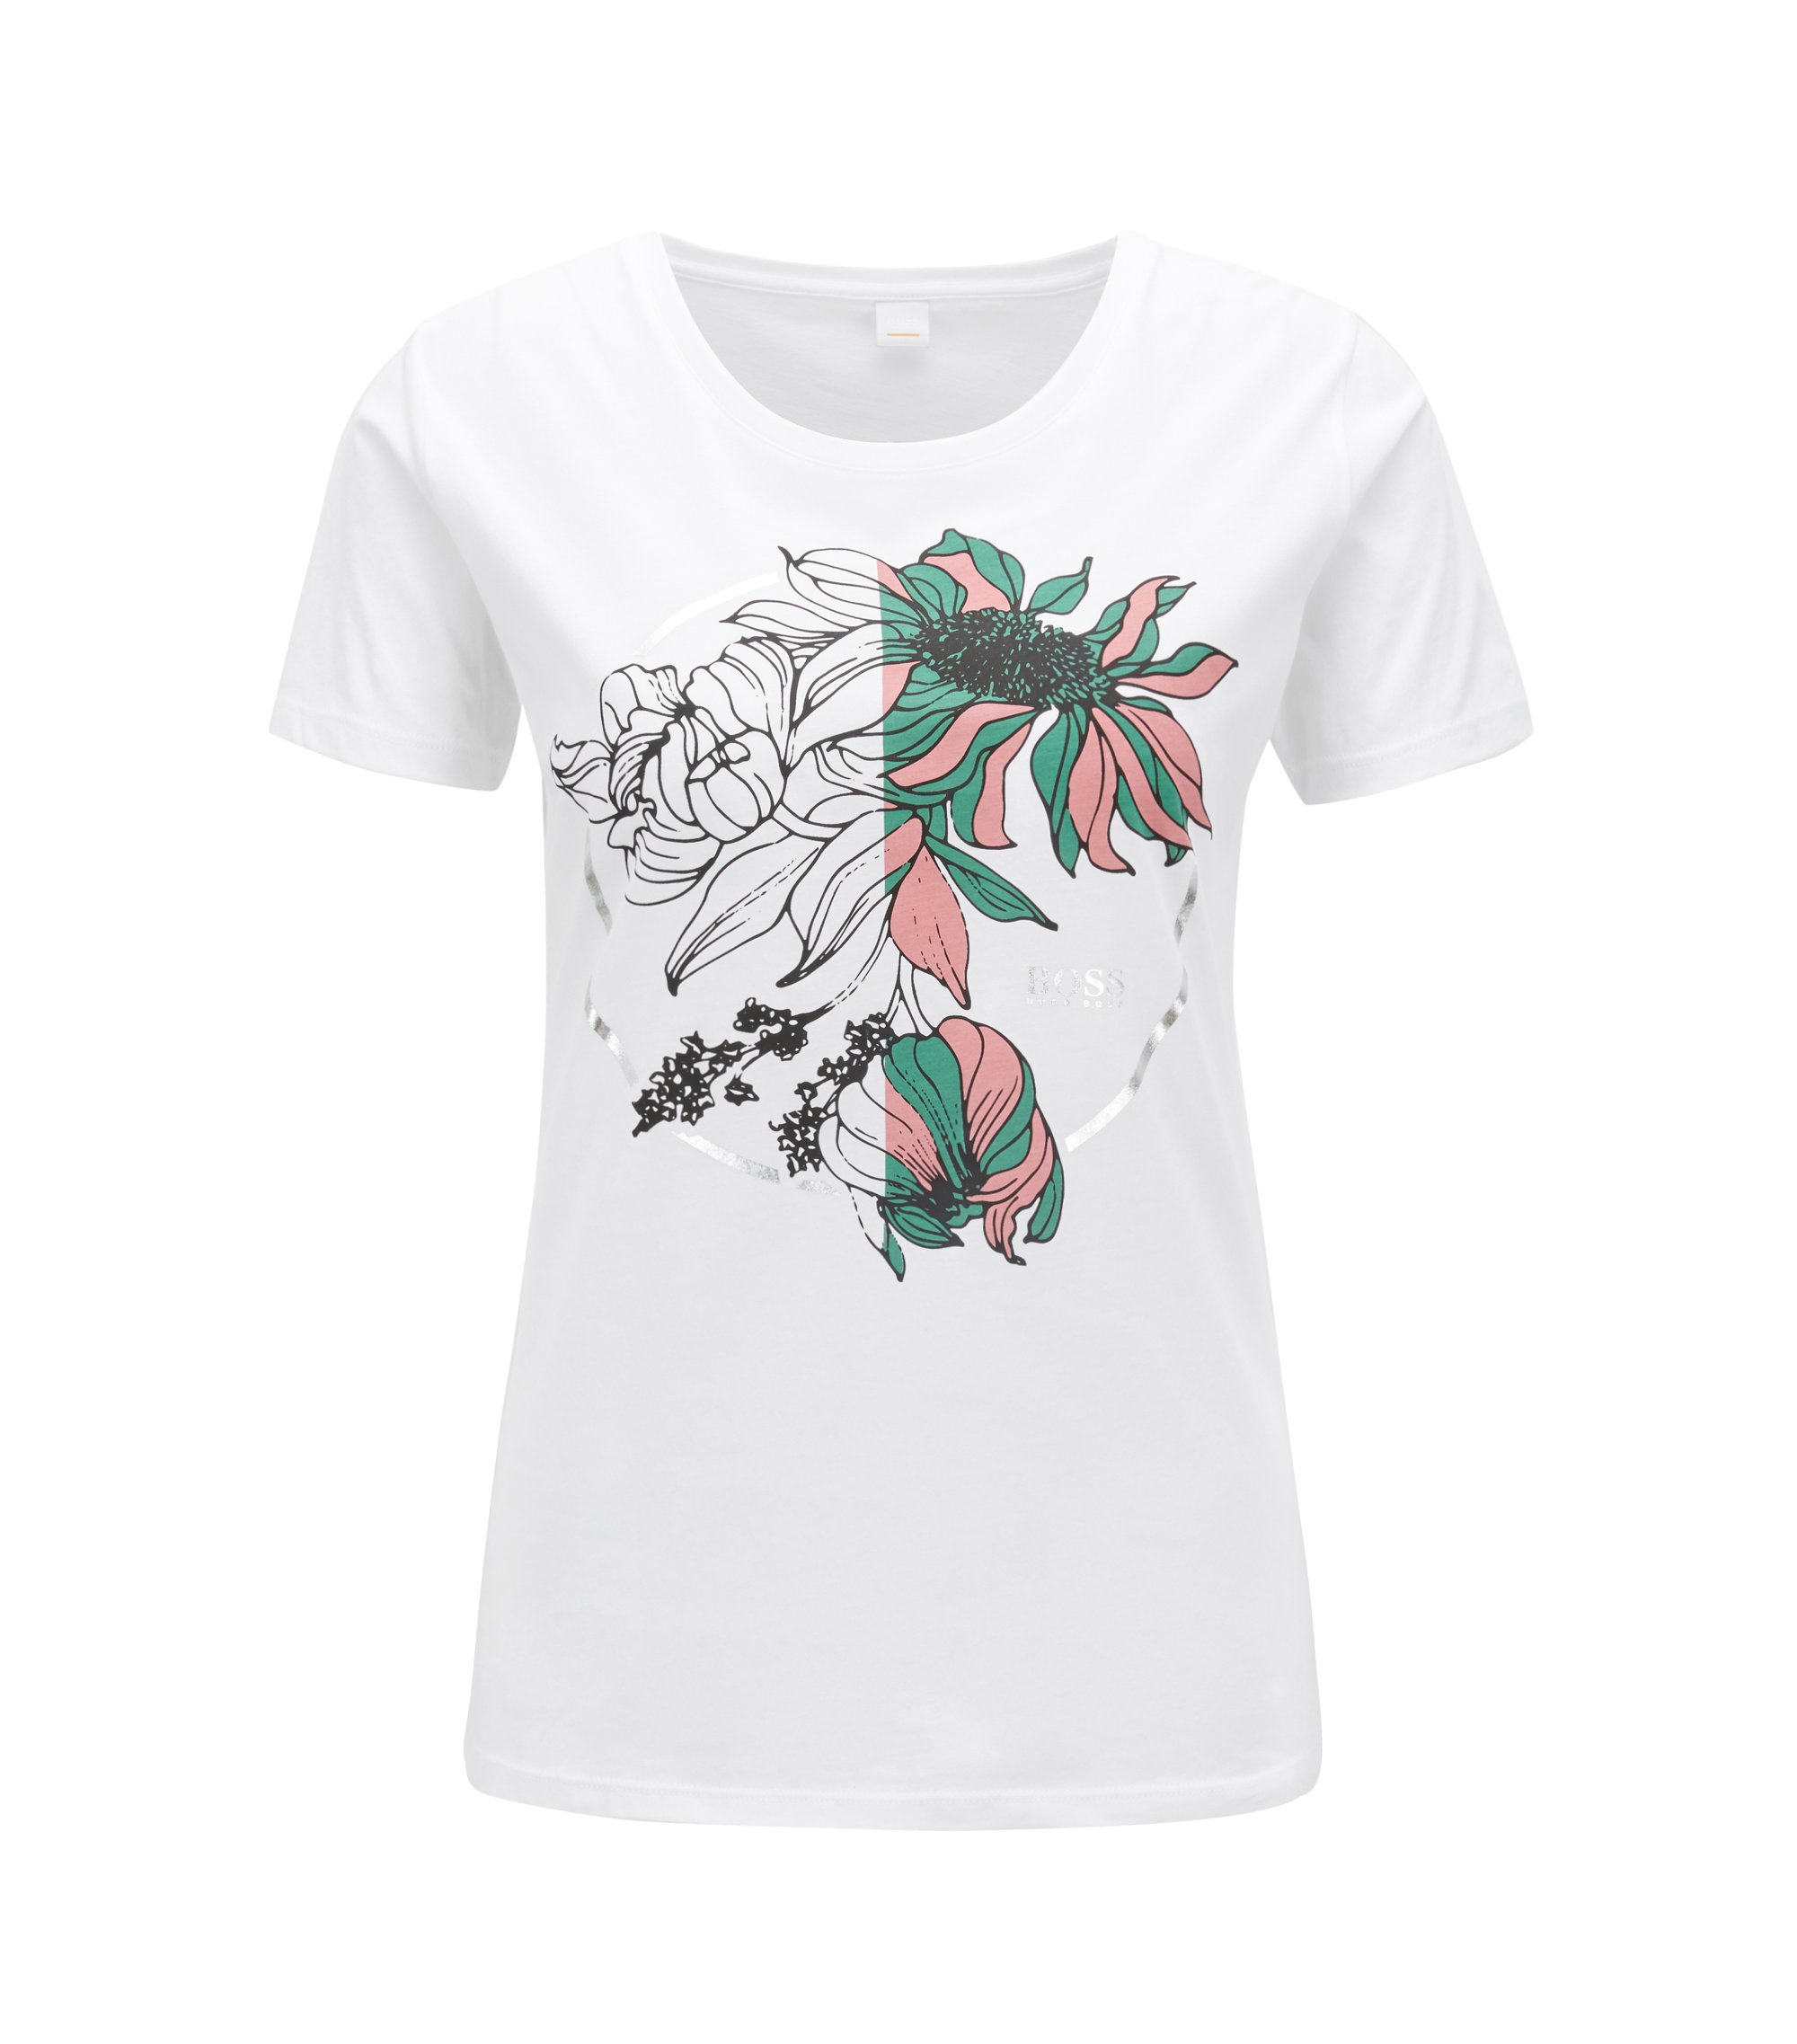 Slim-fit T-shirt in cotton with placement flower print, White